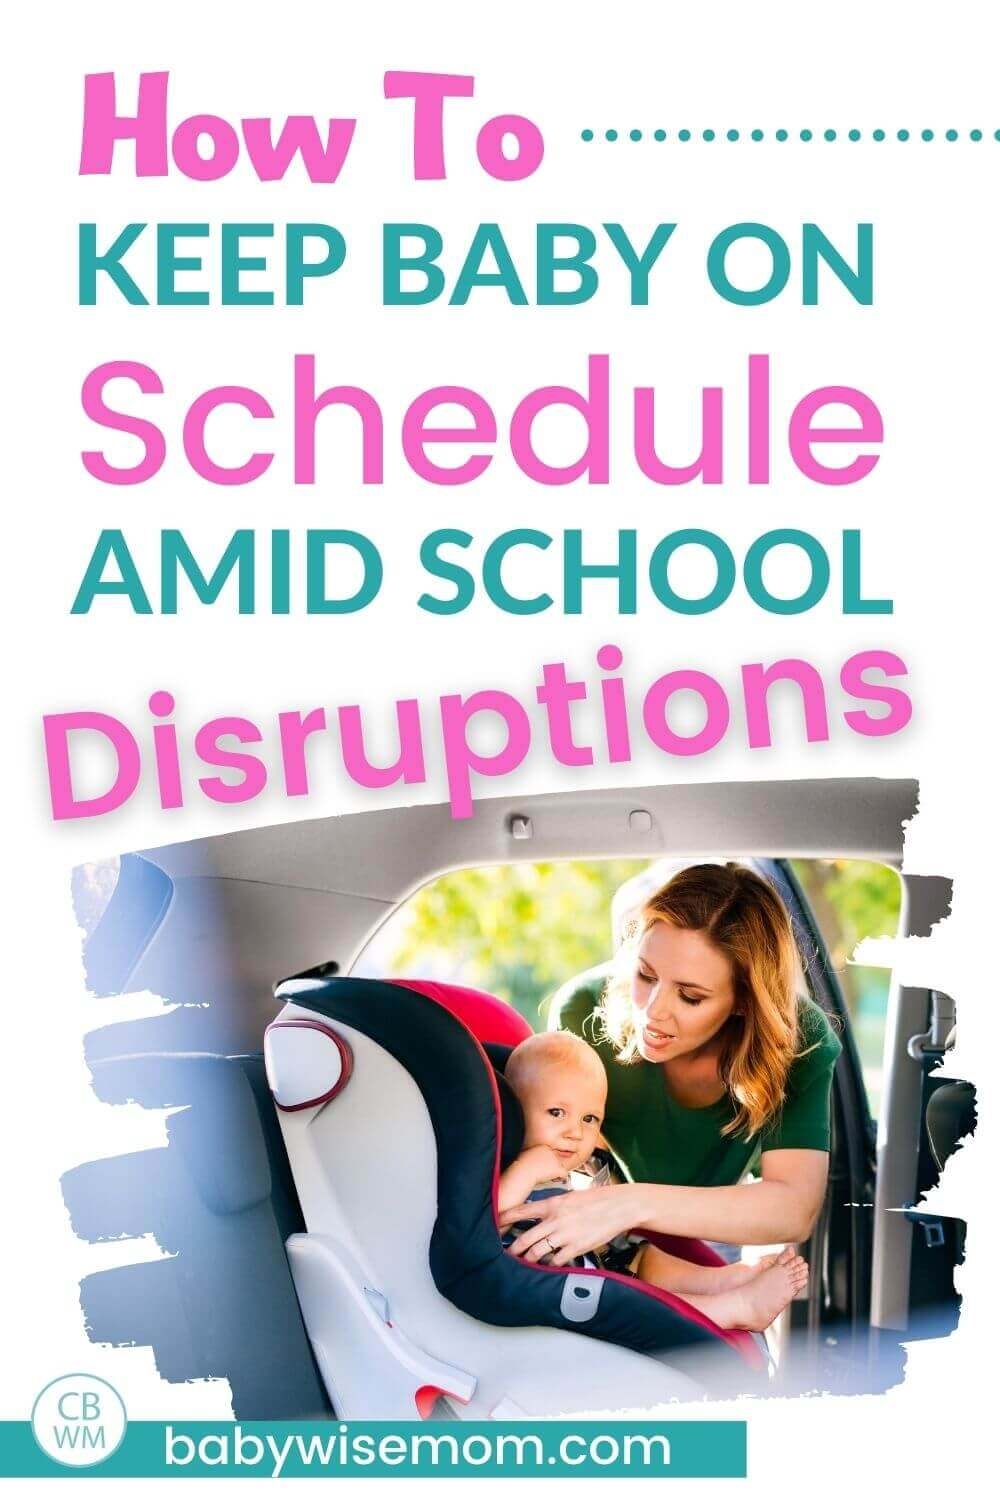 How to keep baby on schedule amid school disruptions pinnable image